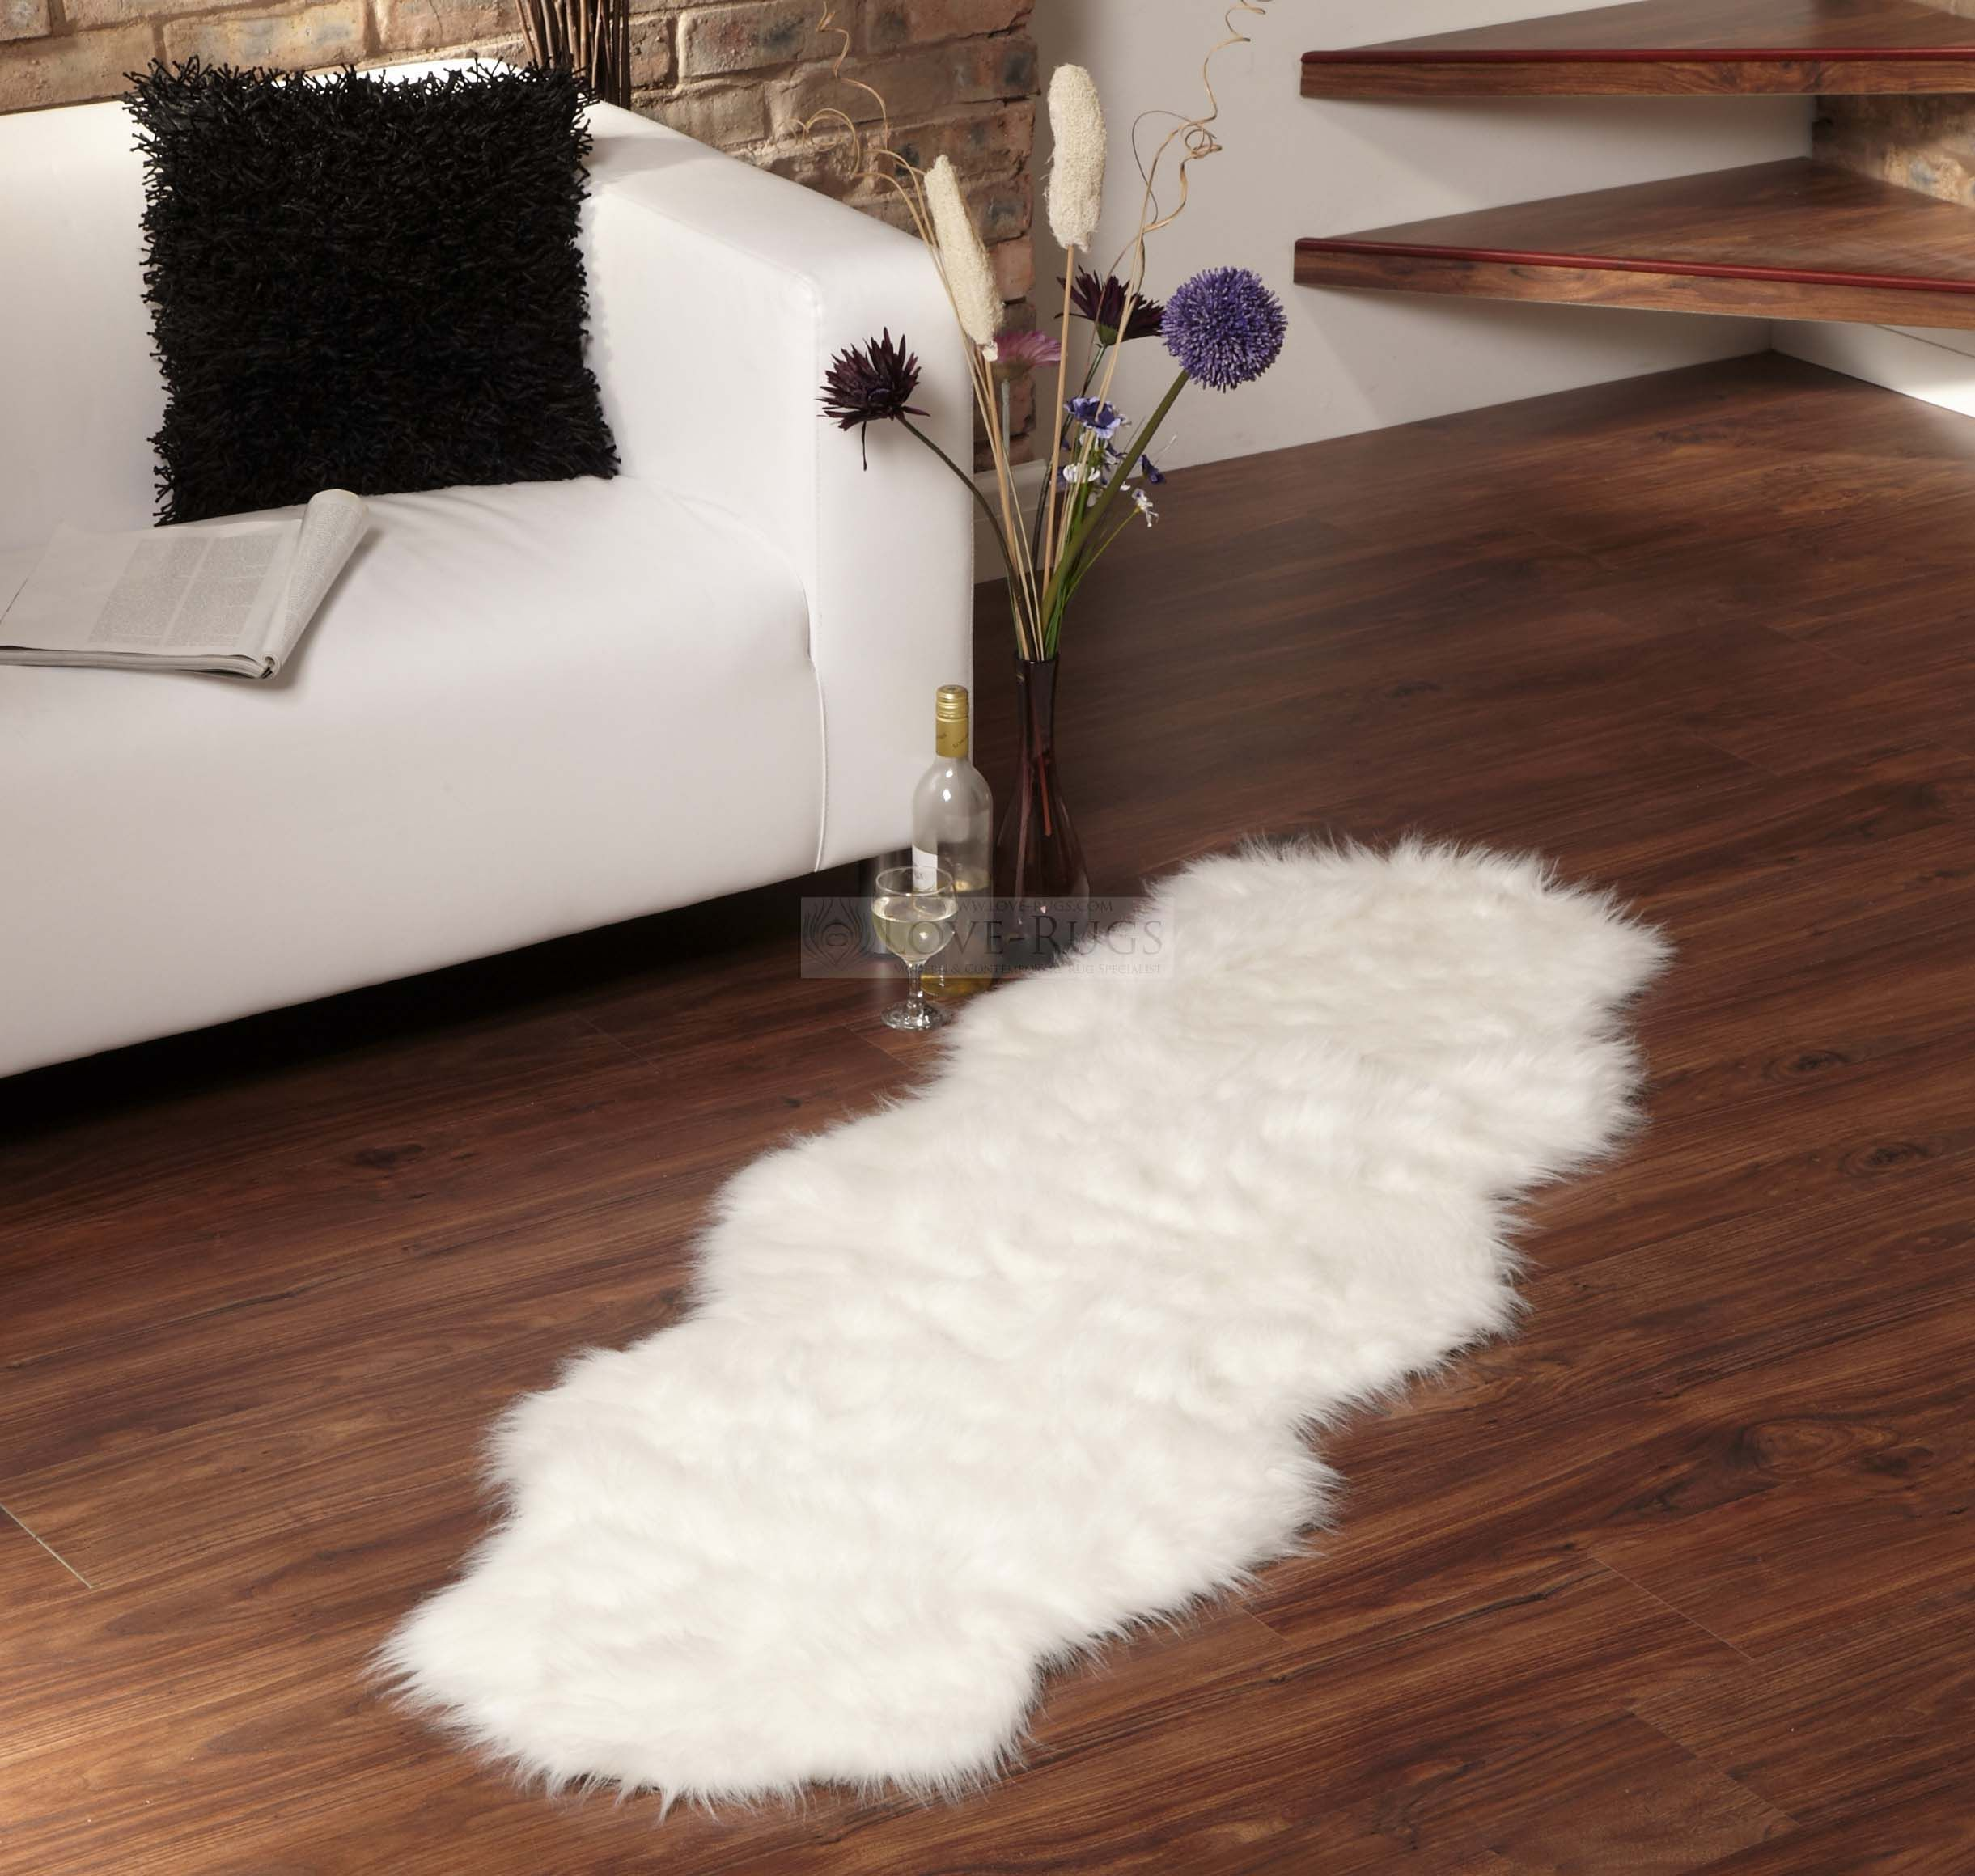 Comfy Faux Sheepskin Rug For Floor Decor Ideas Faux Sheepskin Rug